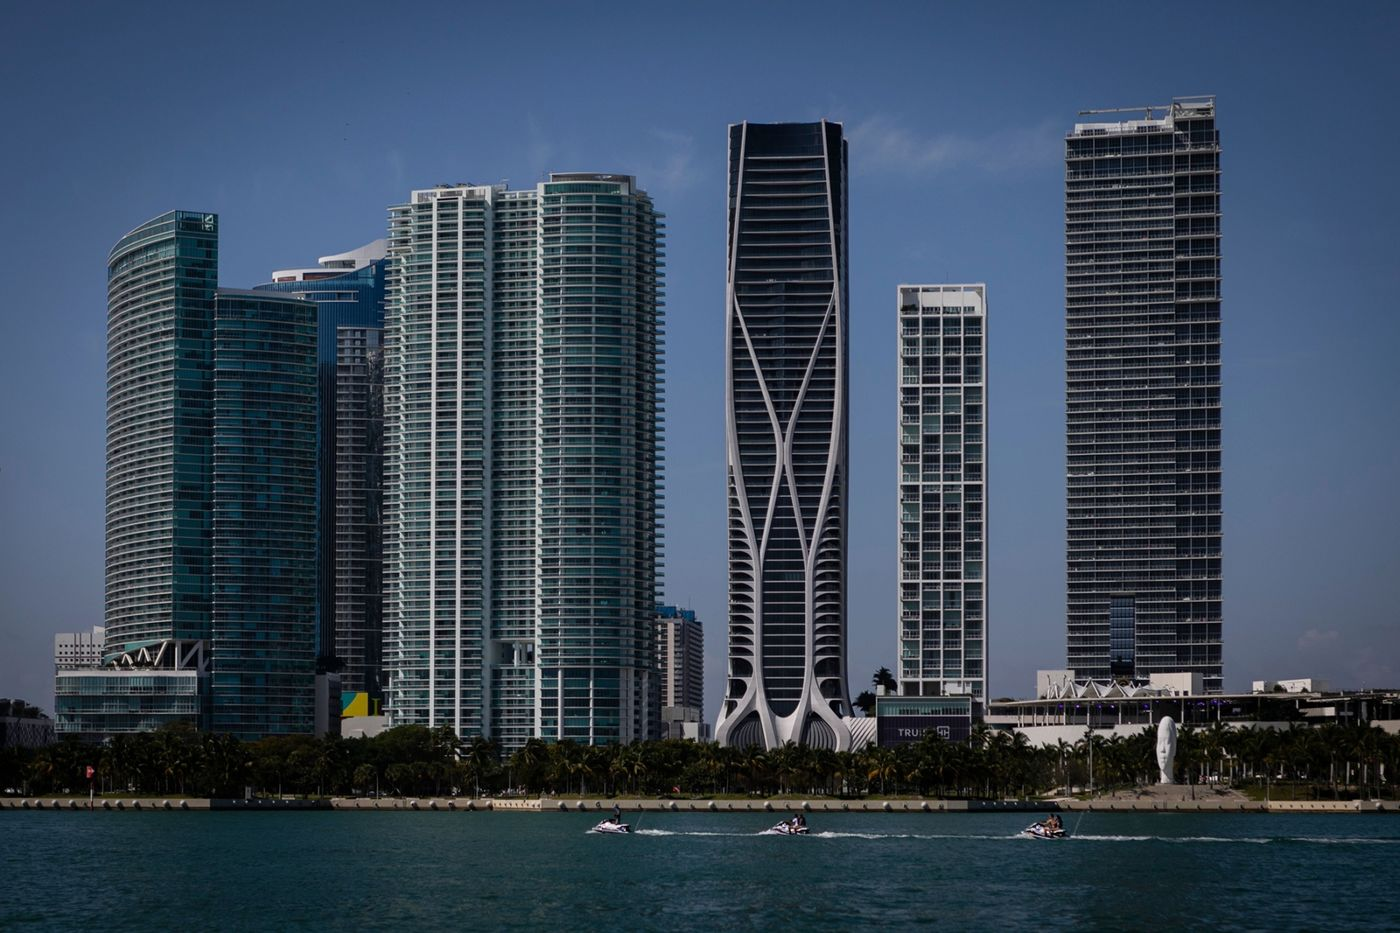 In 2017, South Florida development officials went into overdrive to pitch wealthy Northeasterners on the value of moving to zero-income-tax Florida.